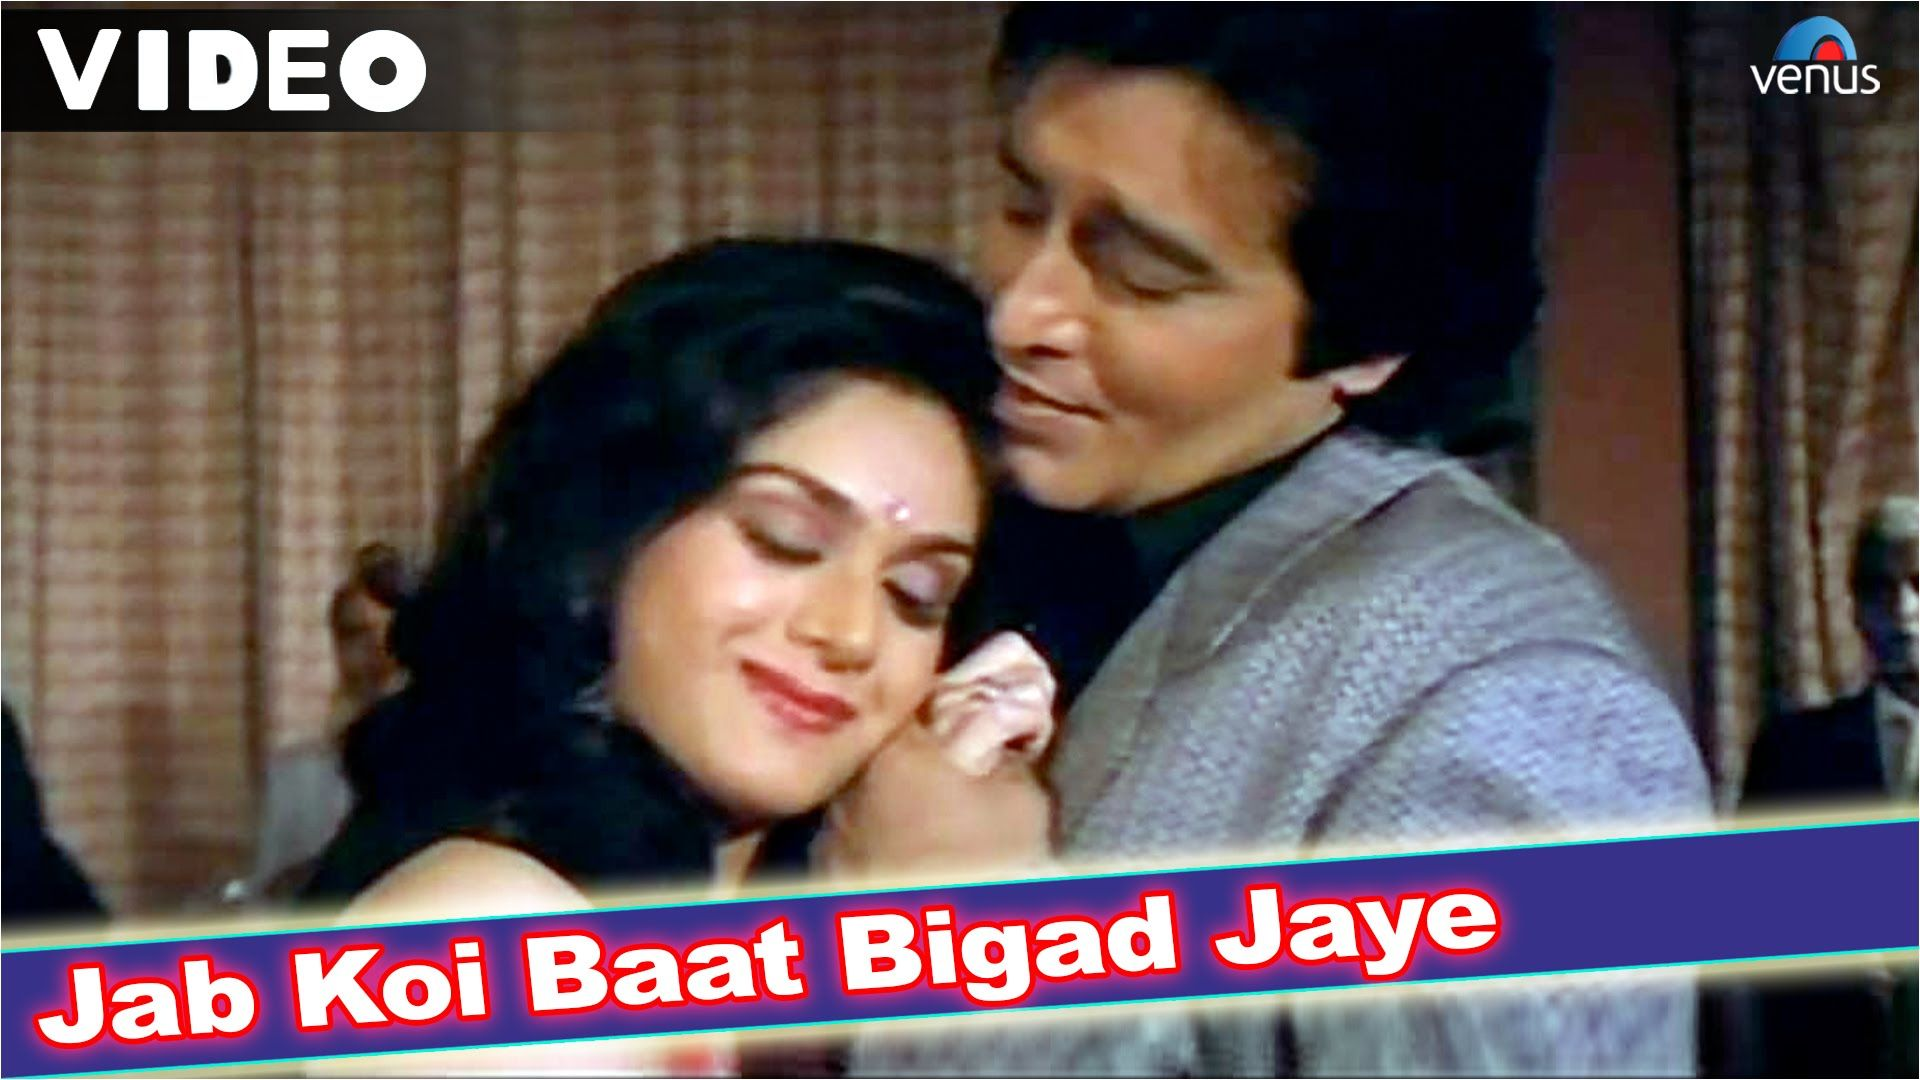 download jab koi baat bigad jaye